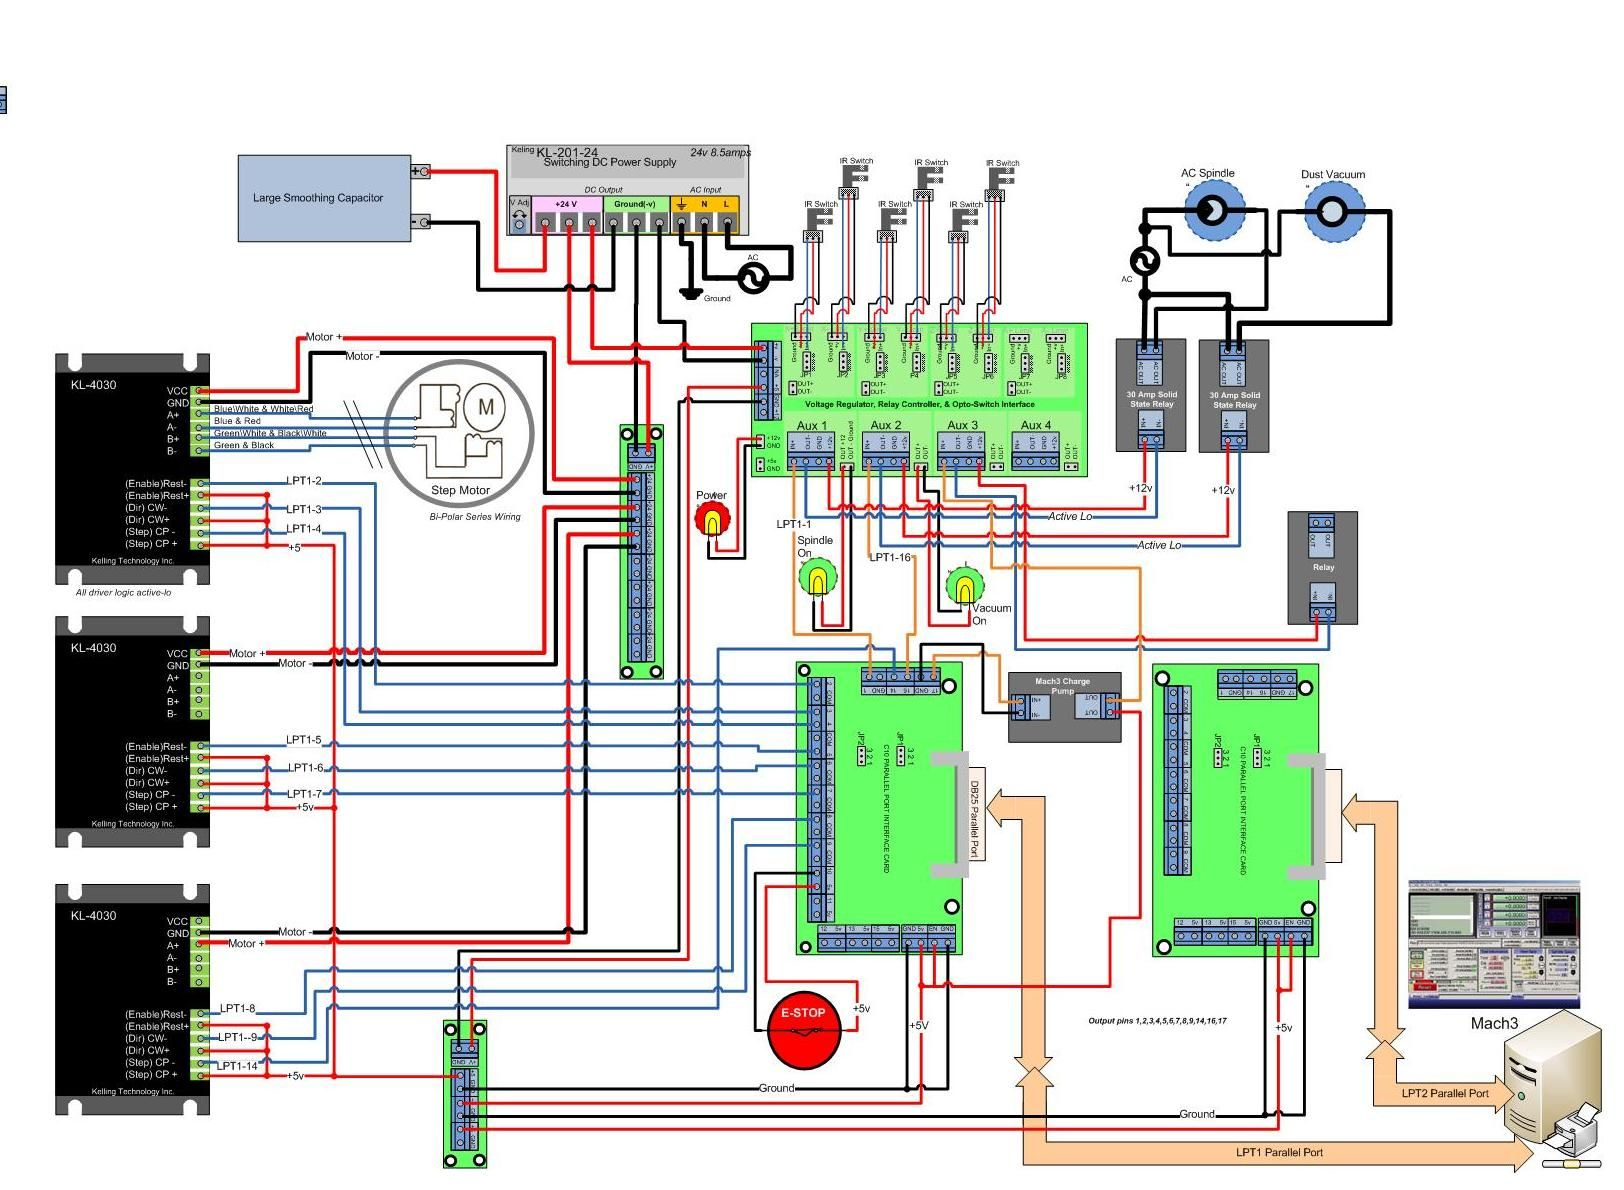 de60b189cc98ab72eeb9d2e3f3d349dc cnc wiring diagram cnc pinterest cnc wiring diagram at webbmarketing.co